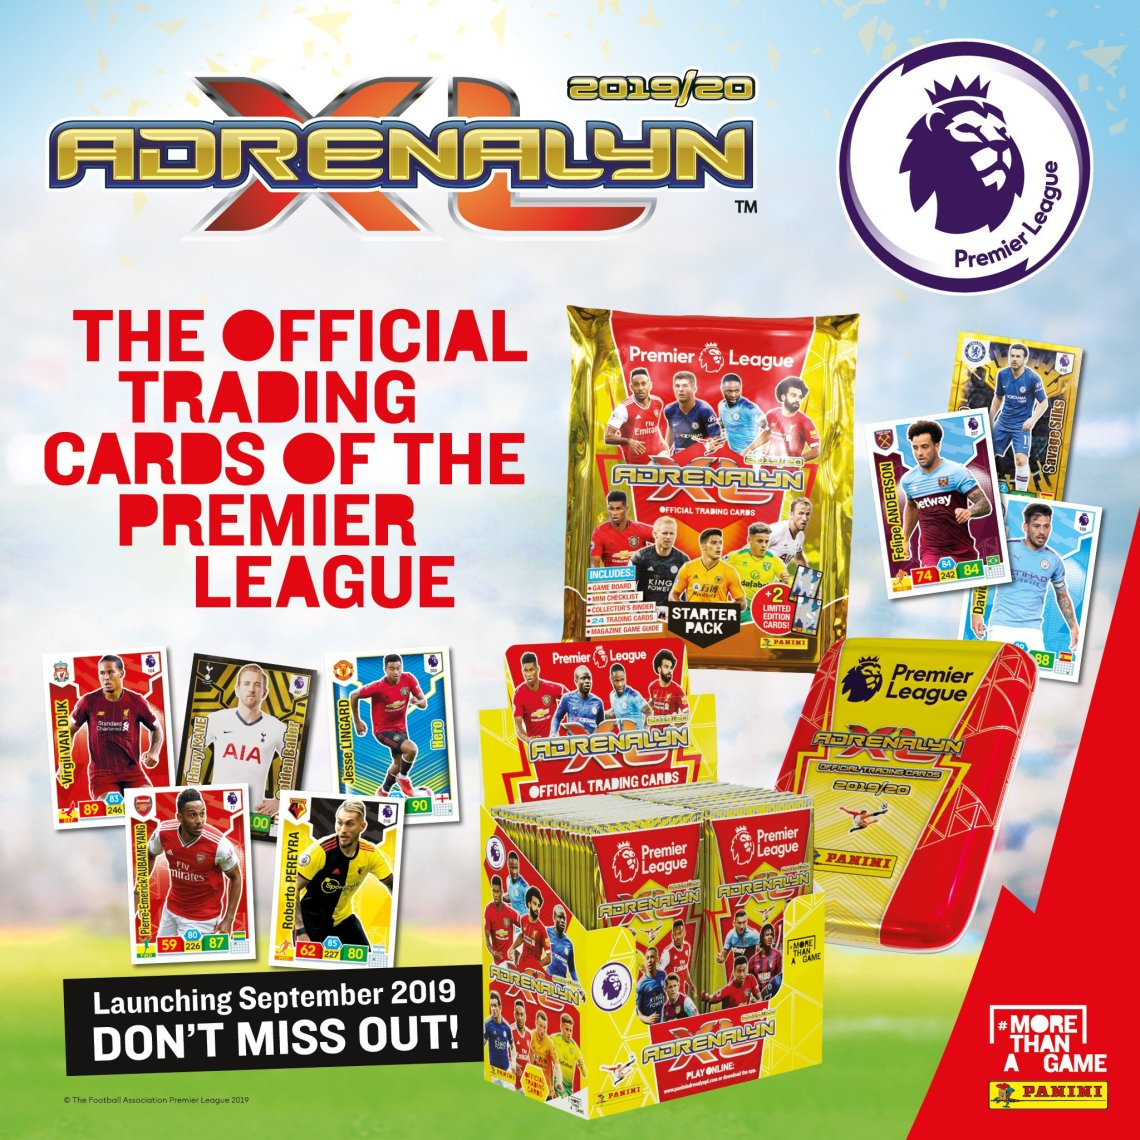 PANINI ADRENALYN XL PREMIER LEAGUE 2019-20 ANNONCE TWITTER.jpeg